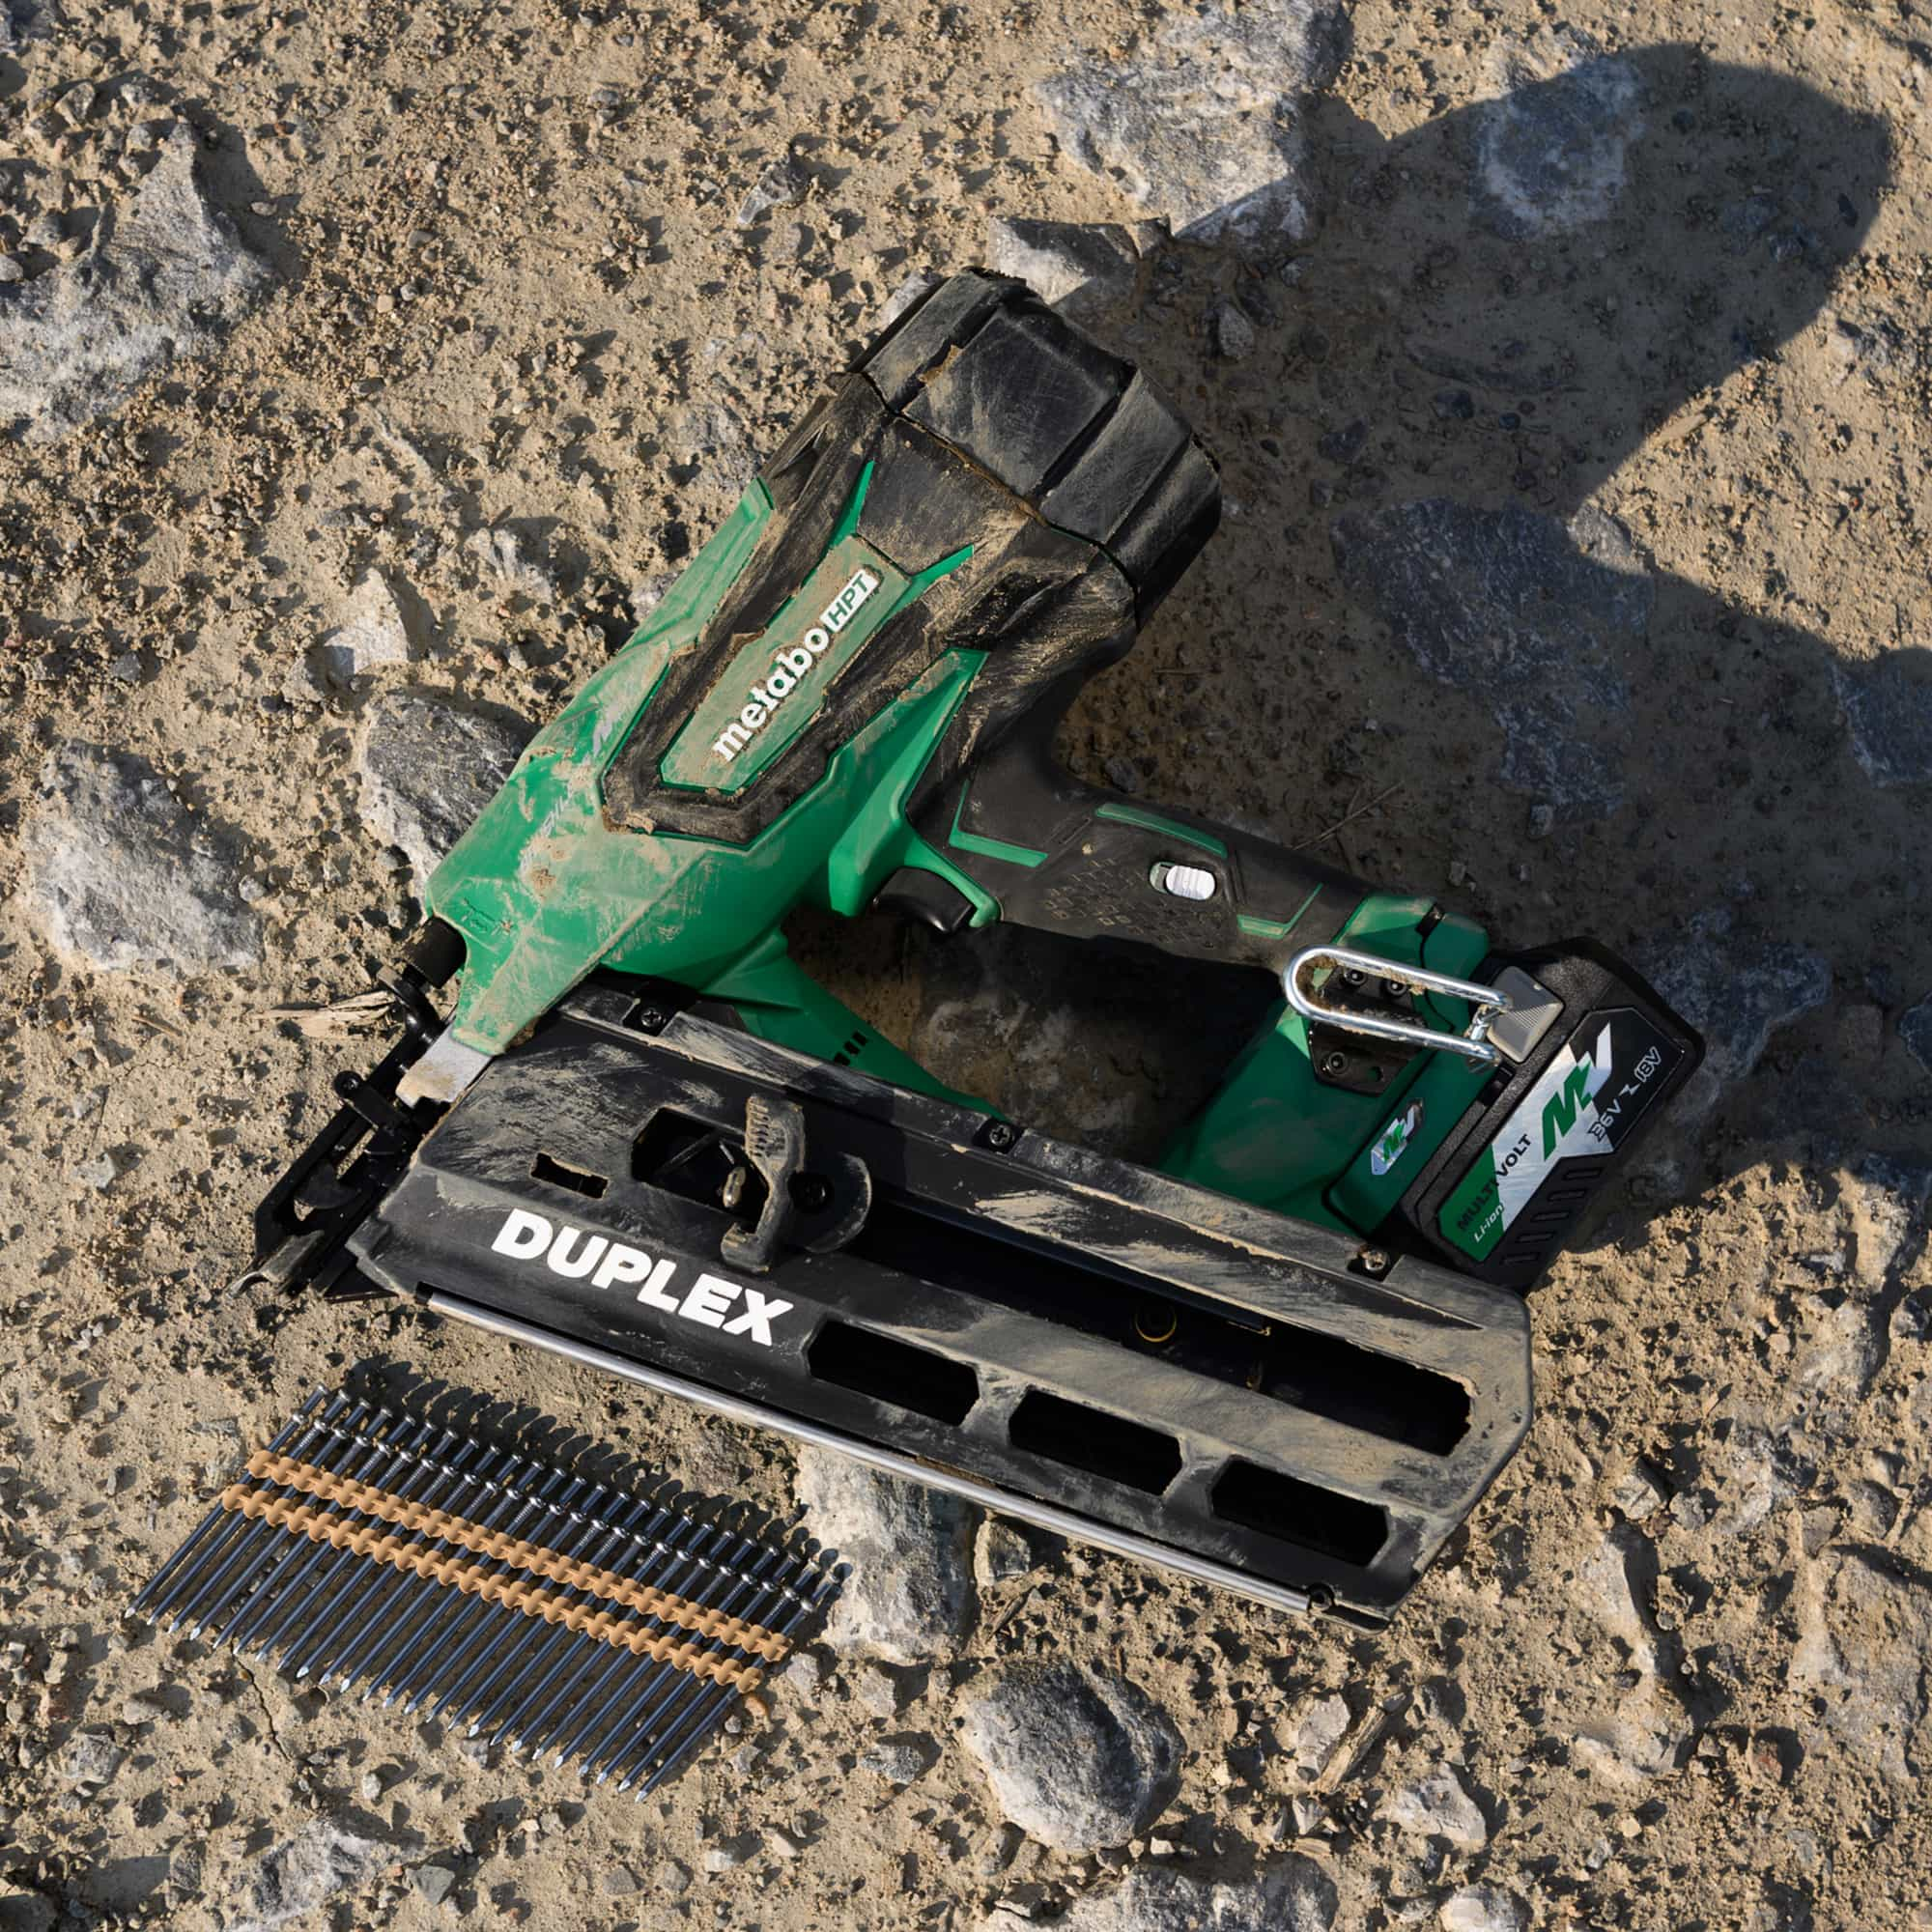 WEB_Duplex Resizing_NR3675DD dirt flat lay w nails KL